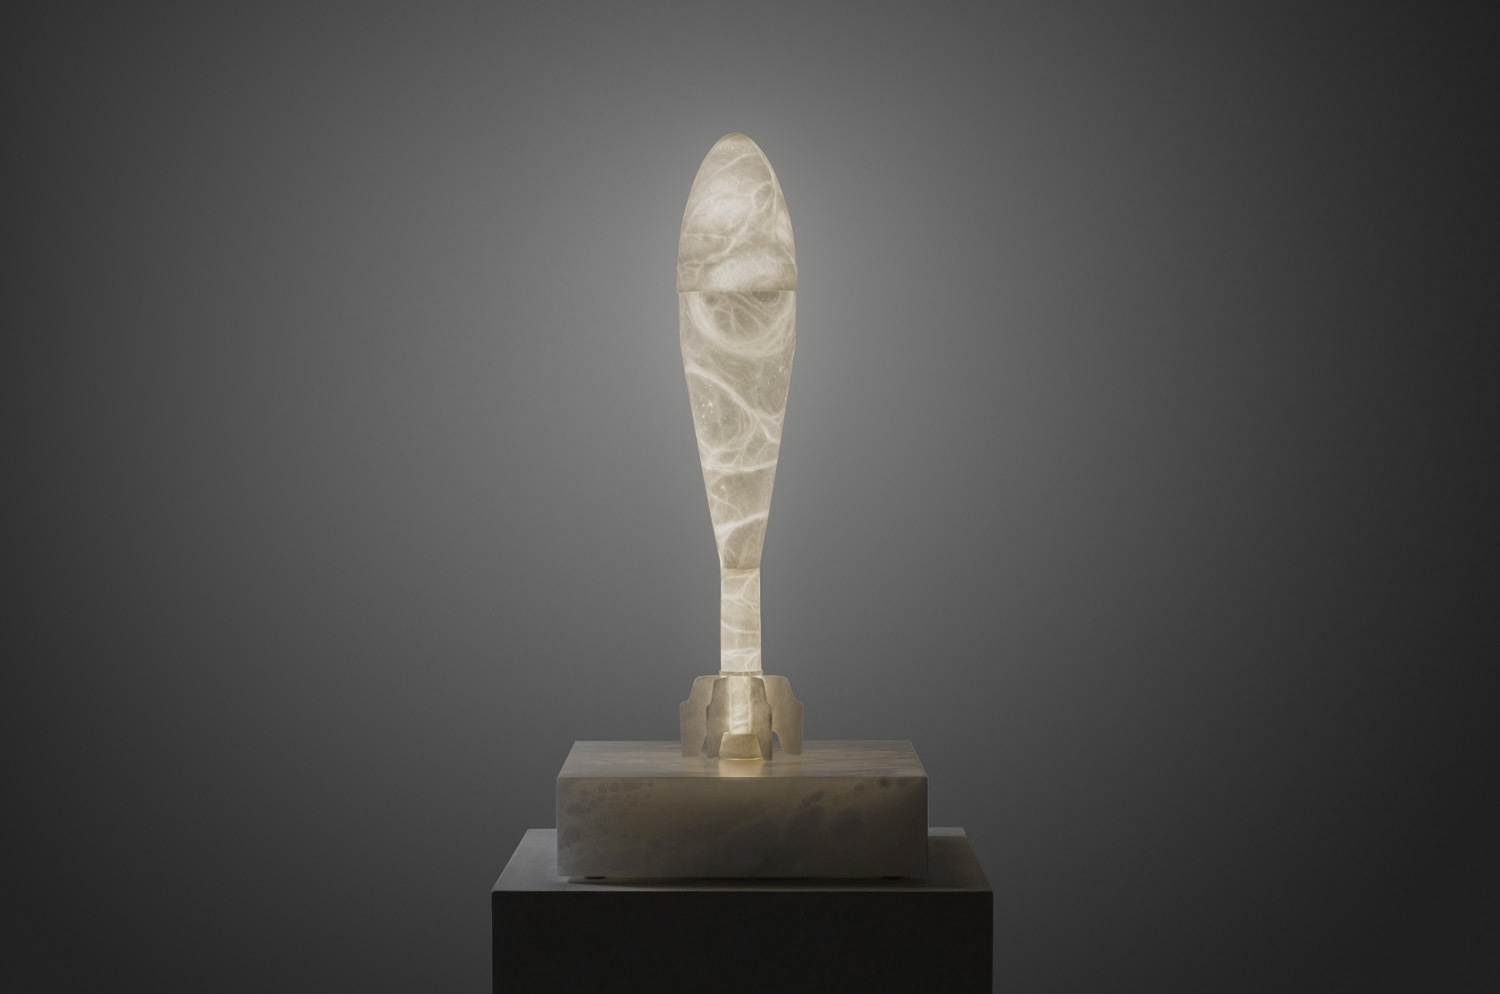 ¡Fuego Amigo! Alabaster sculpture light by Amarist studio.